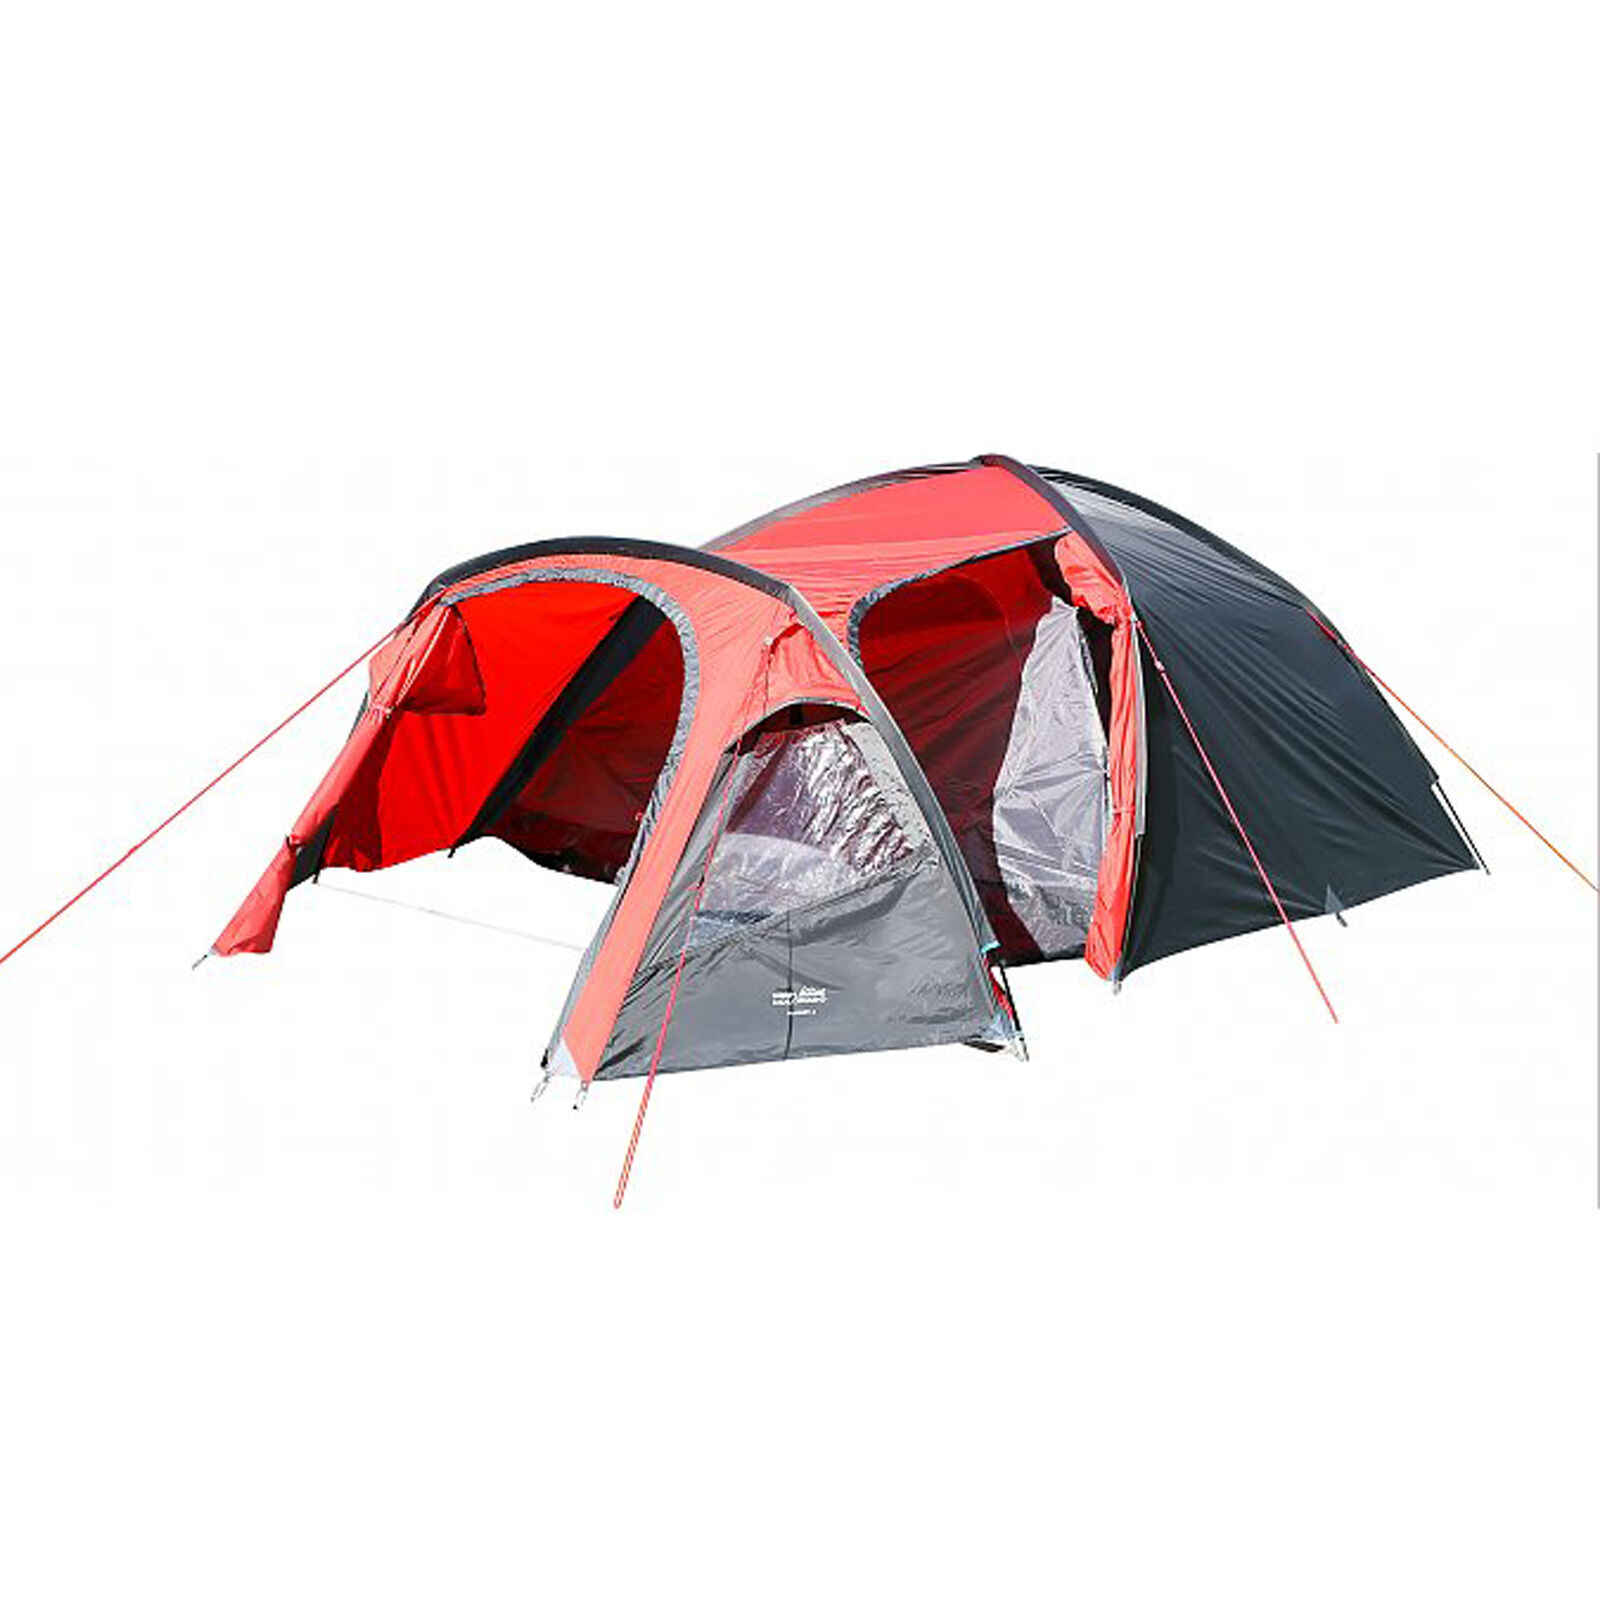 High Farbeado olokot olokot Farbeado 4 Persons Tent Dome Tent with Awning Camping NEW a7f7d3